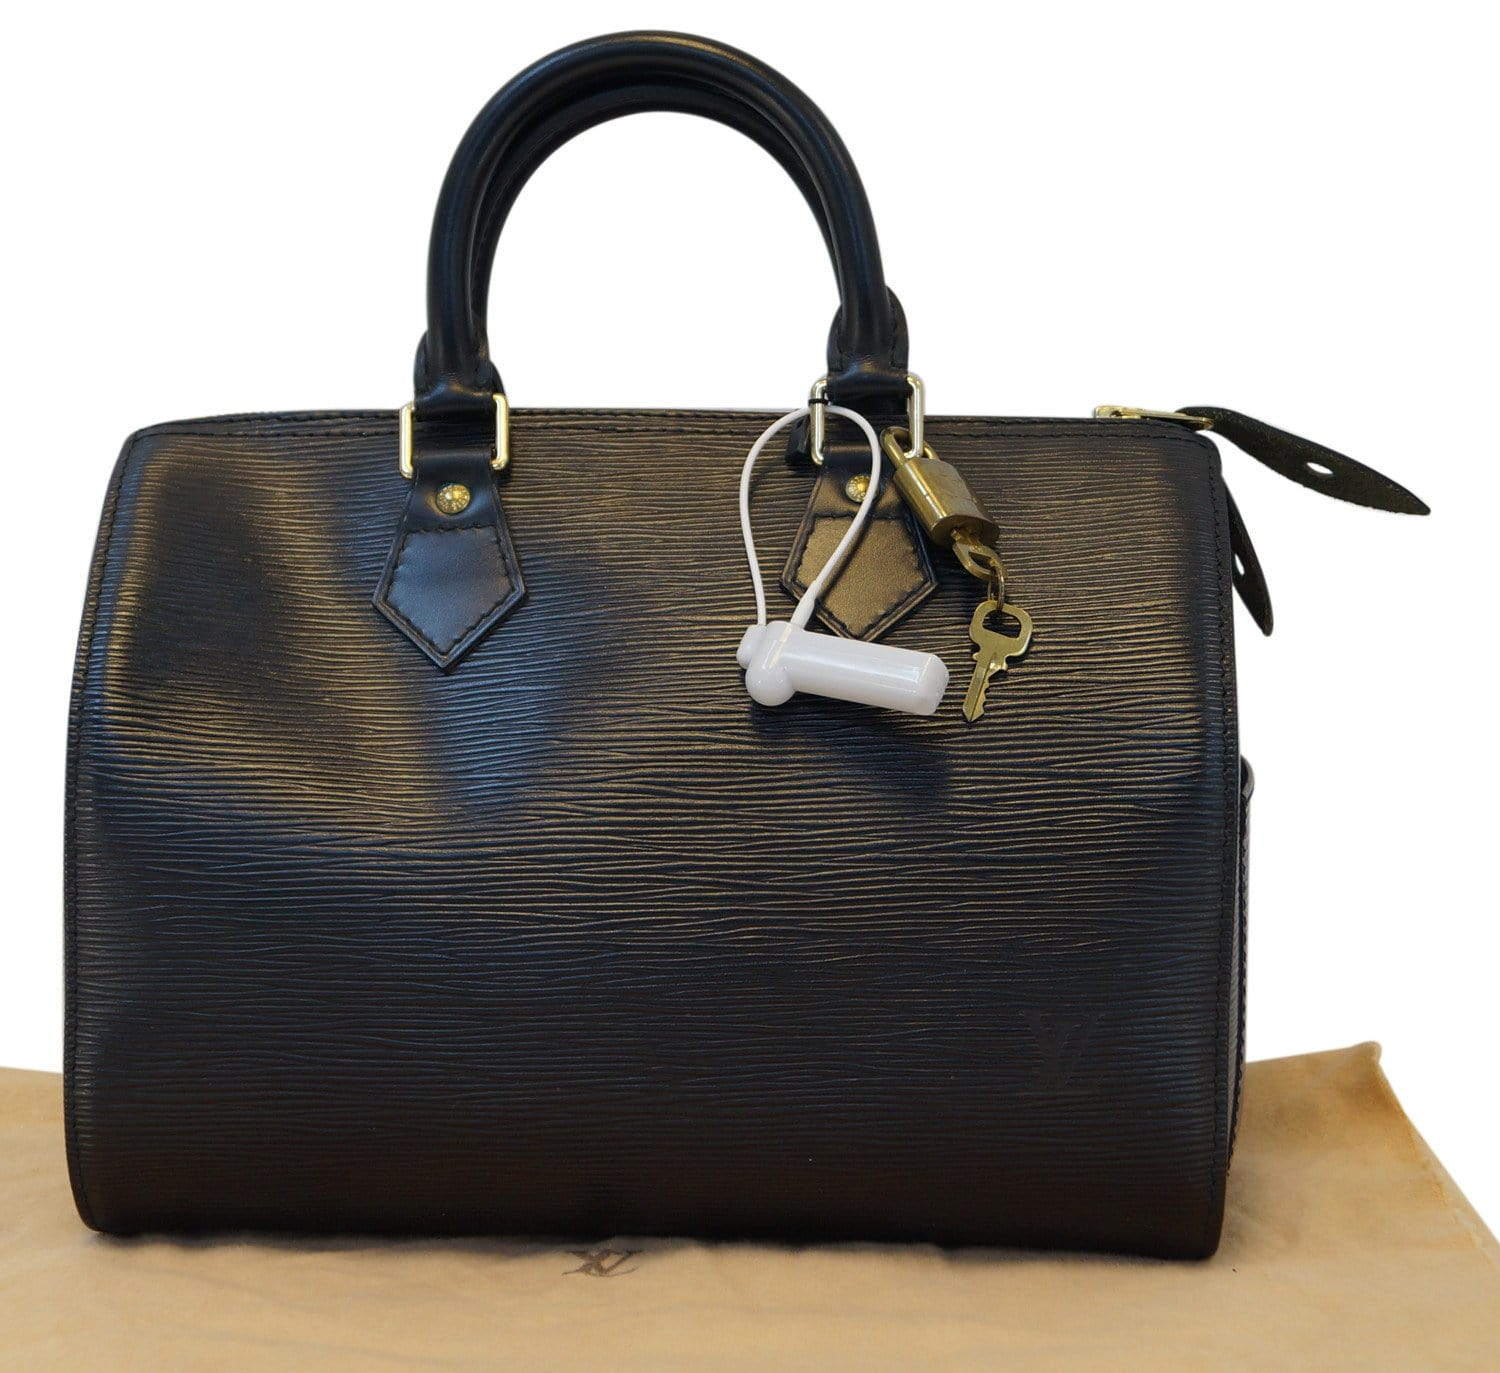 8e17ec08e418 LOUIS VUITTON Used HandBag Black Epi Leather Speedy 25 Satchel